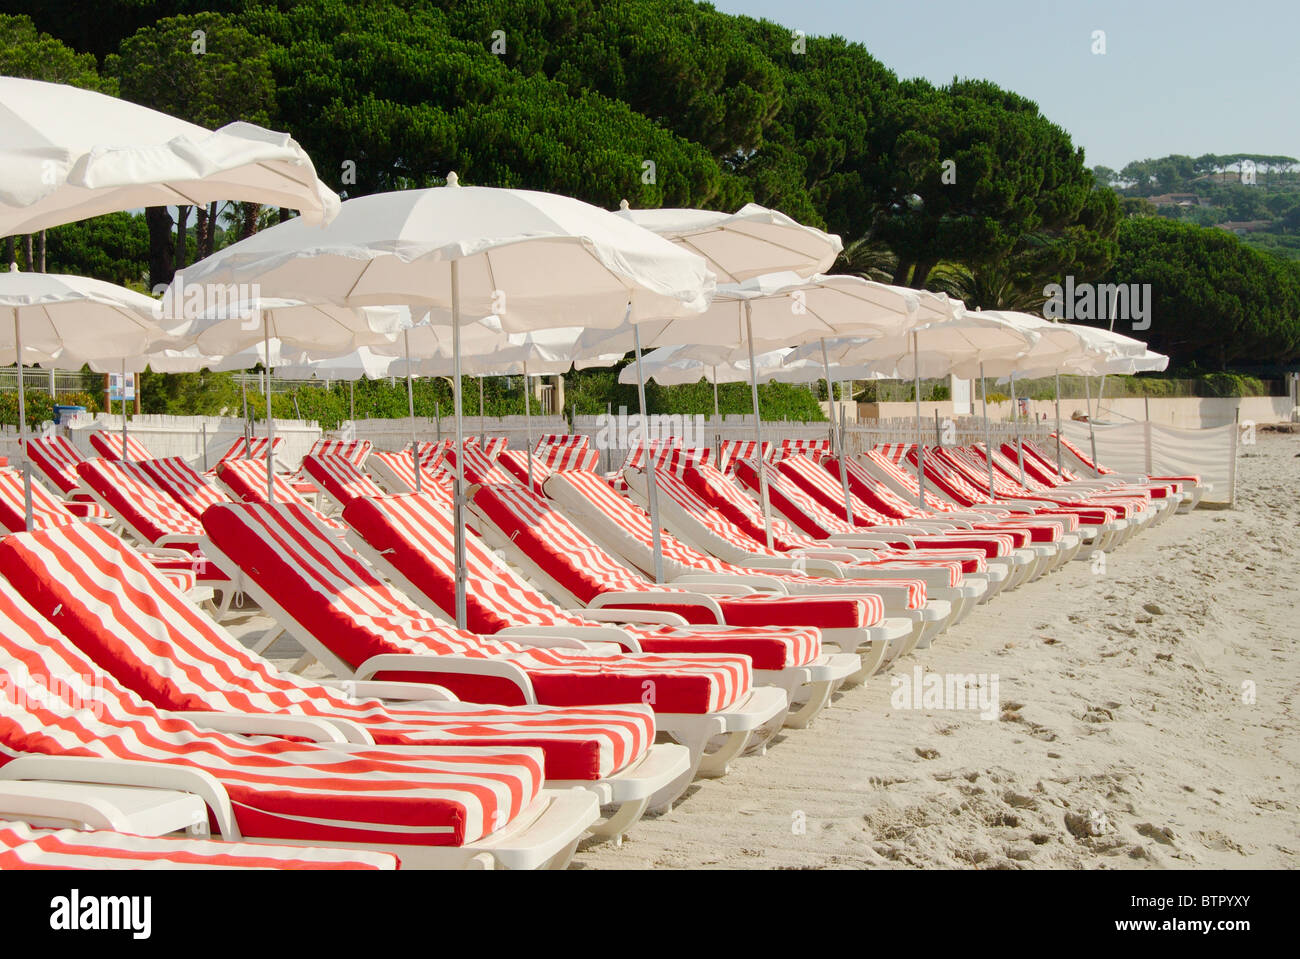 France, Saint-Tropez, Pampelonne, View of empty sun loungers and beach umbrellas at beach - Stock Image